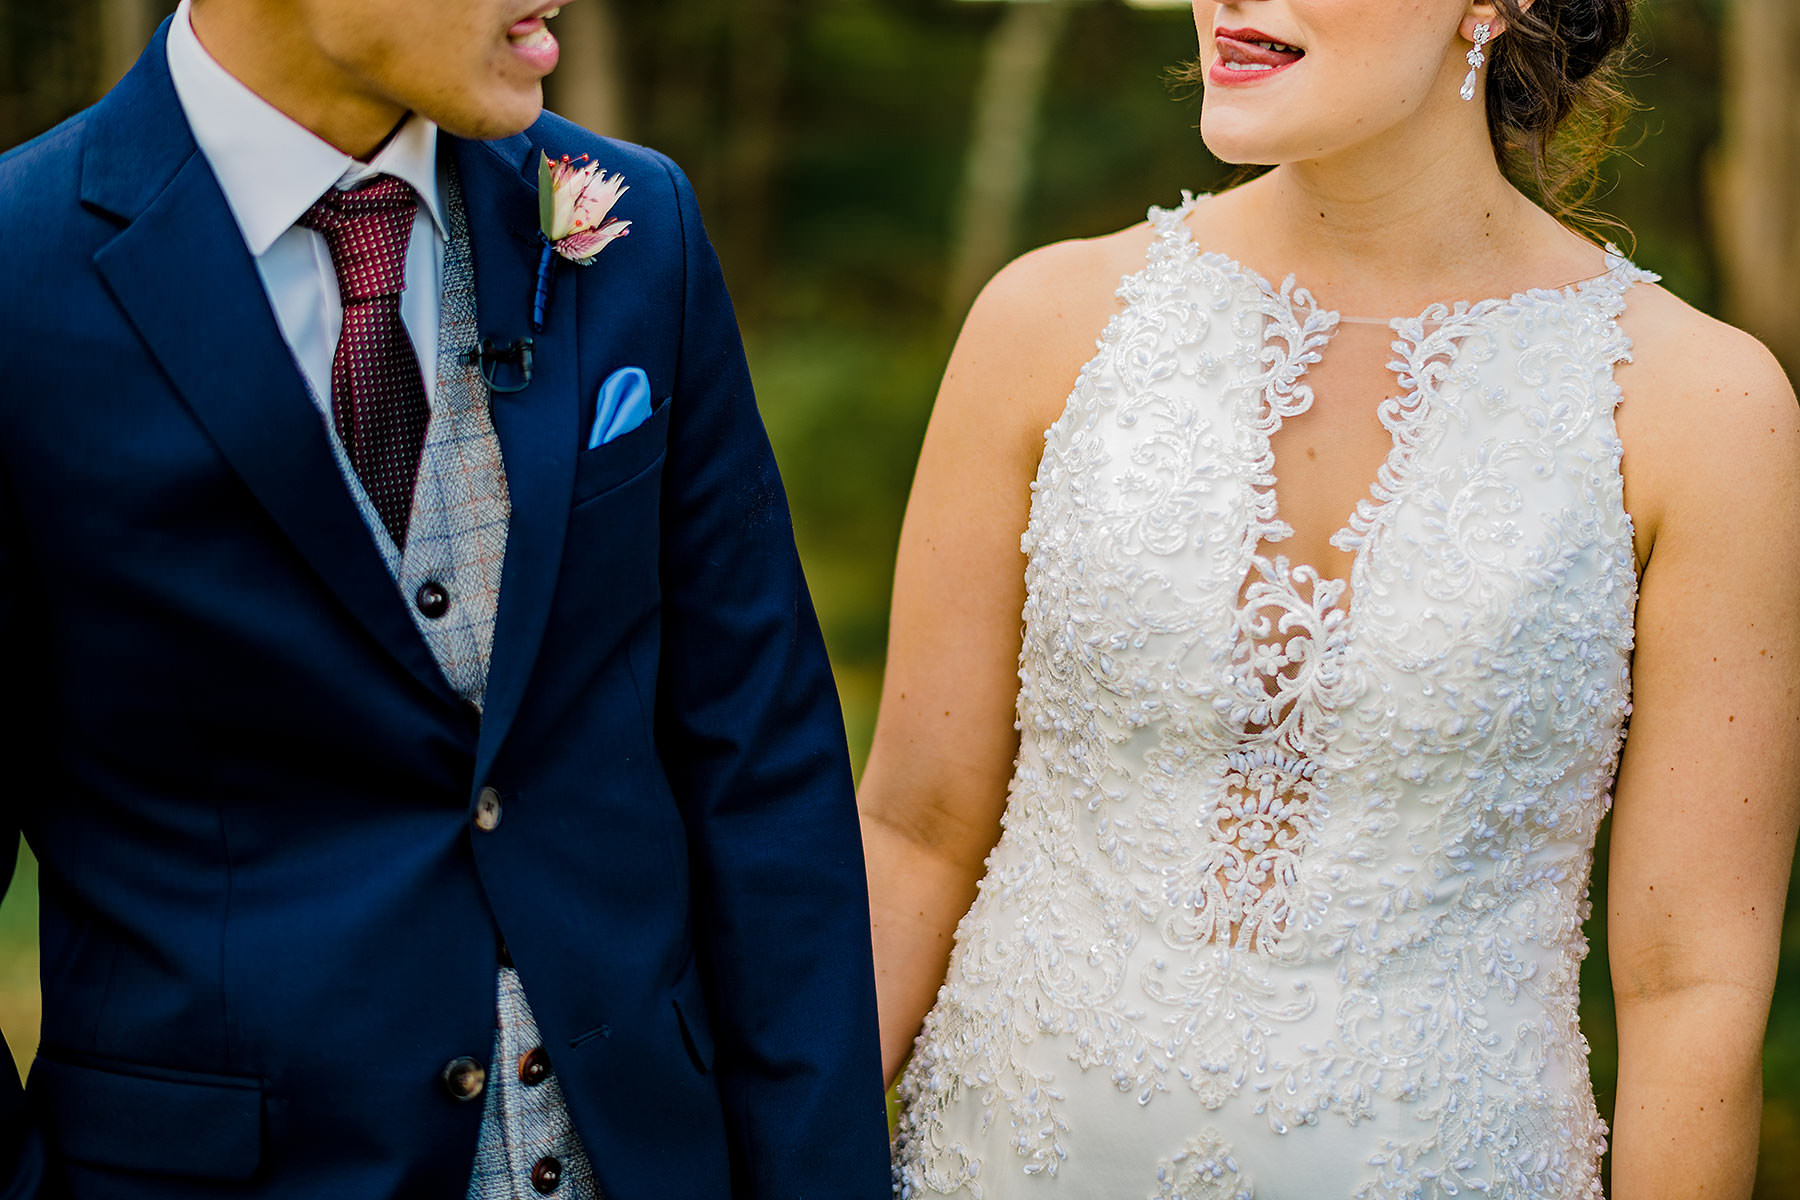 bride and groom lick their lips in funny sexy manner by Washington DC Wedding Photographer Adam Mason